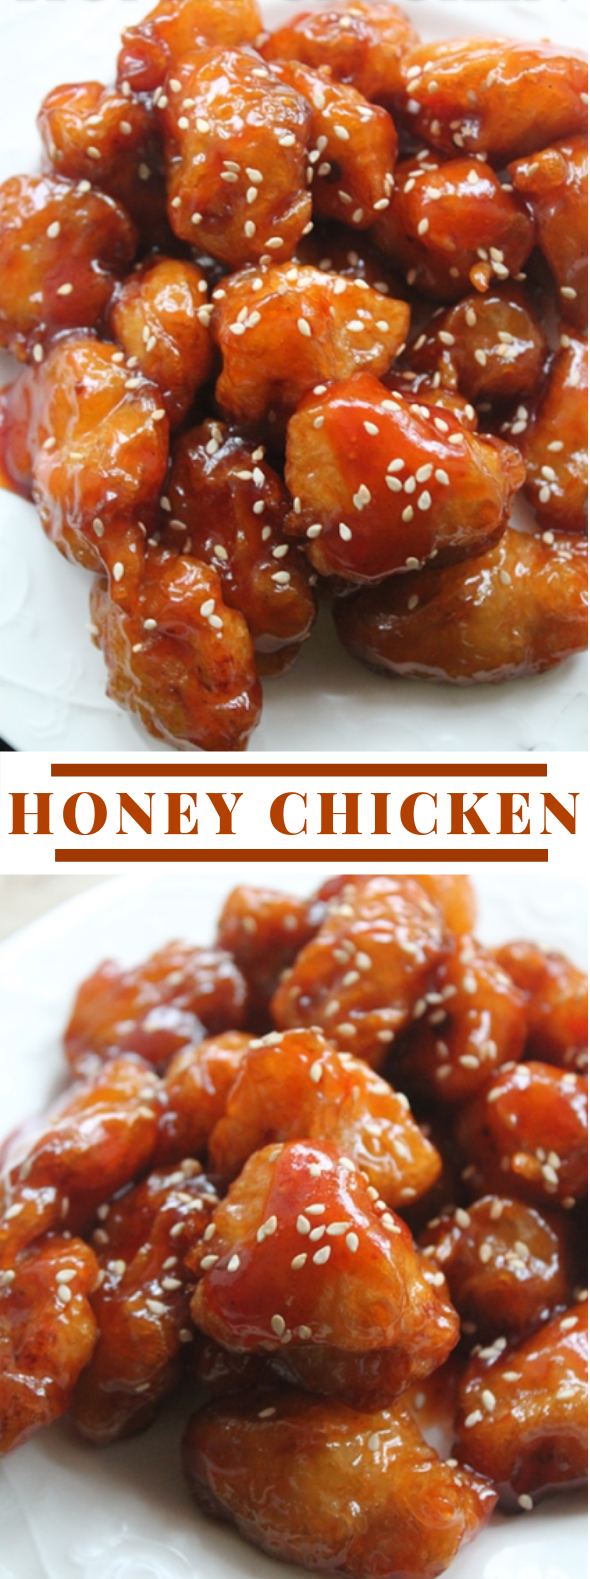 ADDICTIVE HONEY CHICKEN RECIPE #dinner #populerrecipe